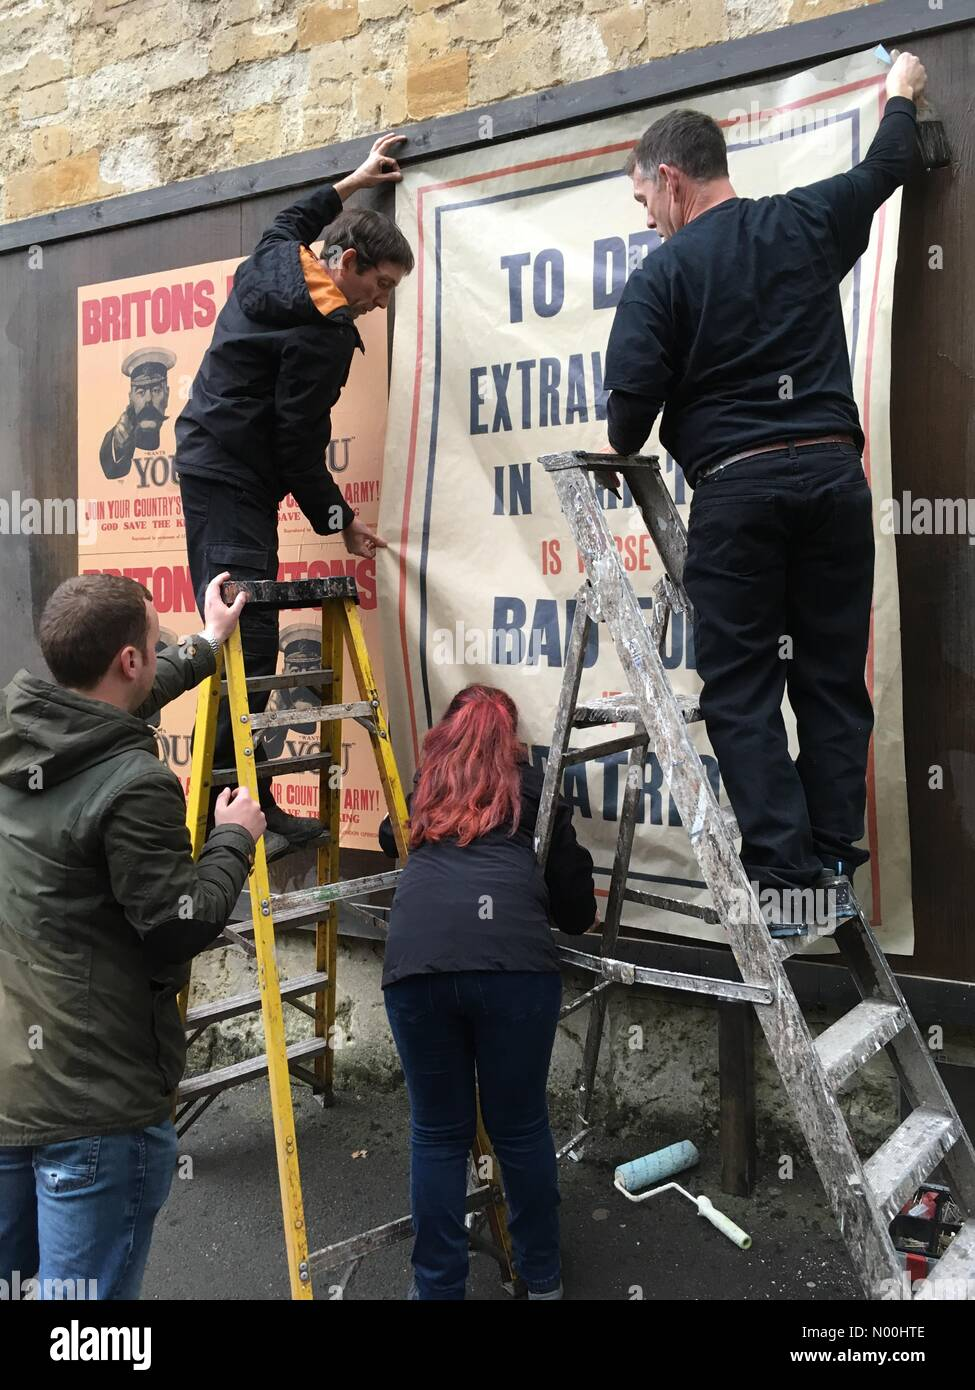 Oxford, UK. 14th Nov, 2017. Oxford, UK. 14th November 2017. Putting up First World War style posters on Brasenose - Stock Image